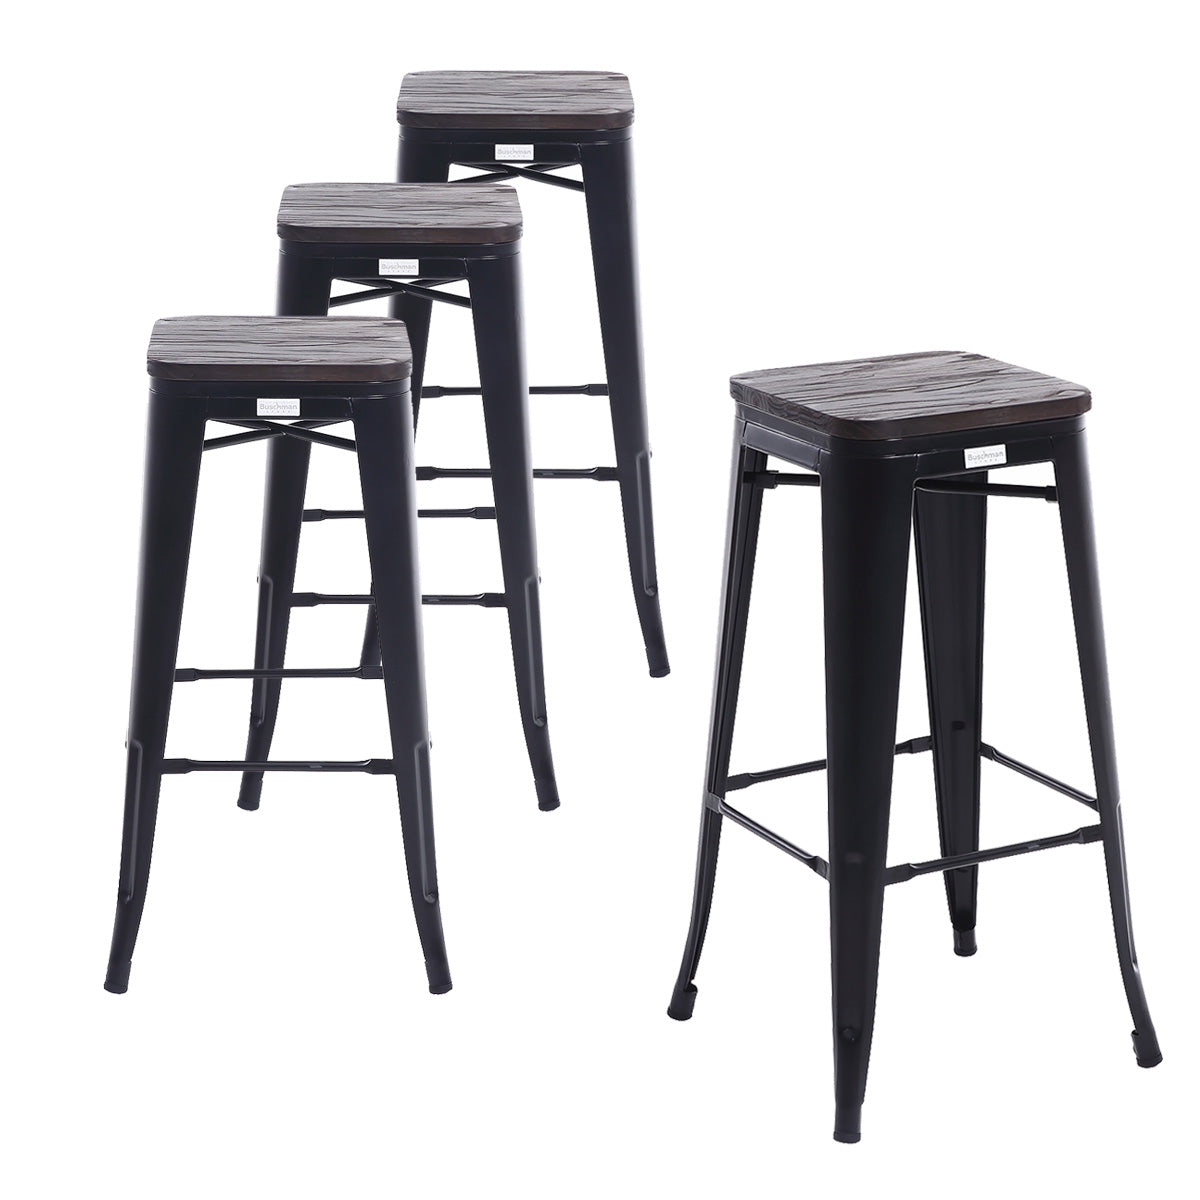 Buschman Set Of 4 Matte Black Wooden Seat 30 Inch Bar Height Metal